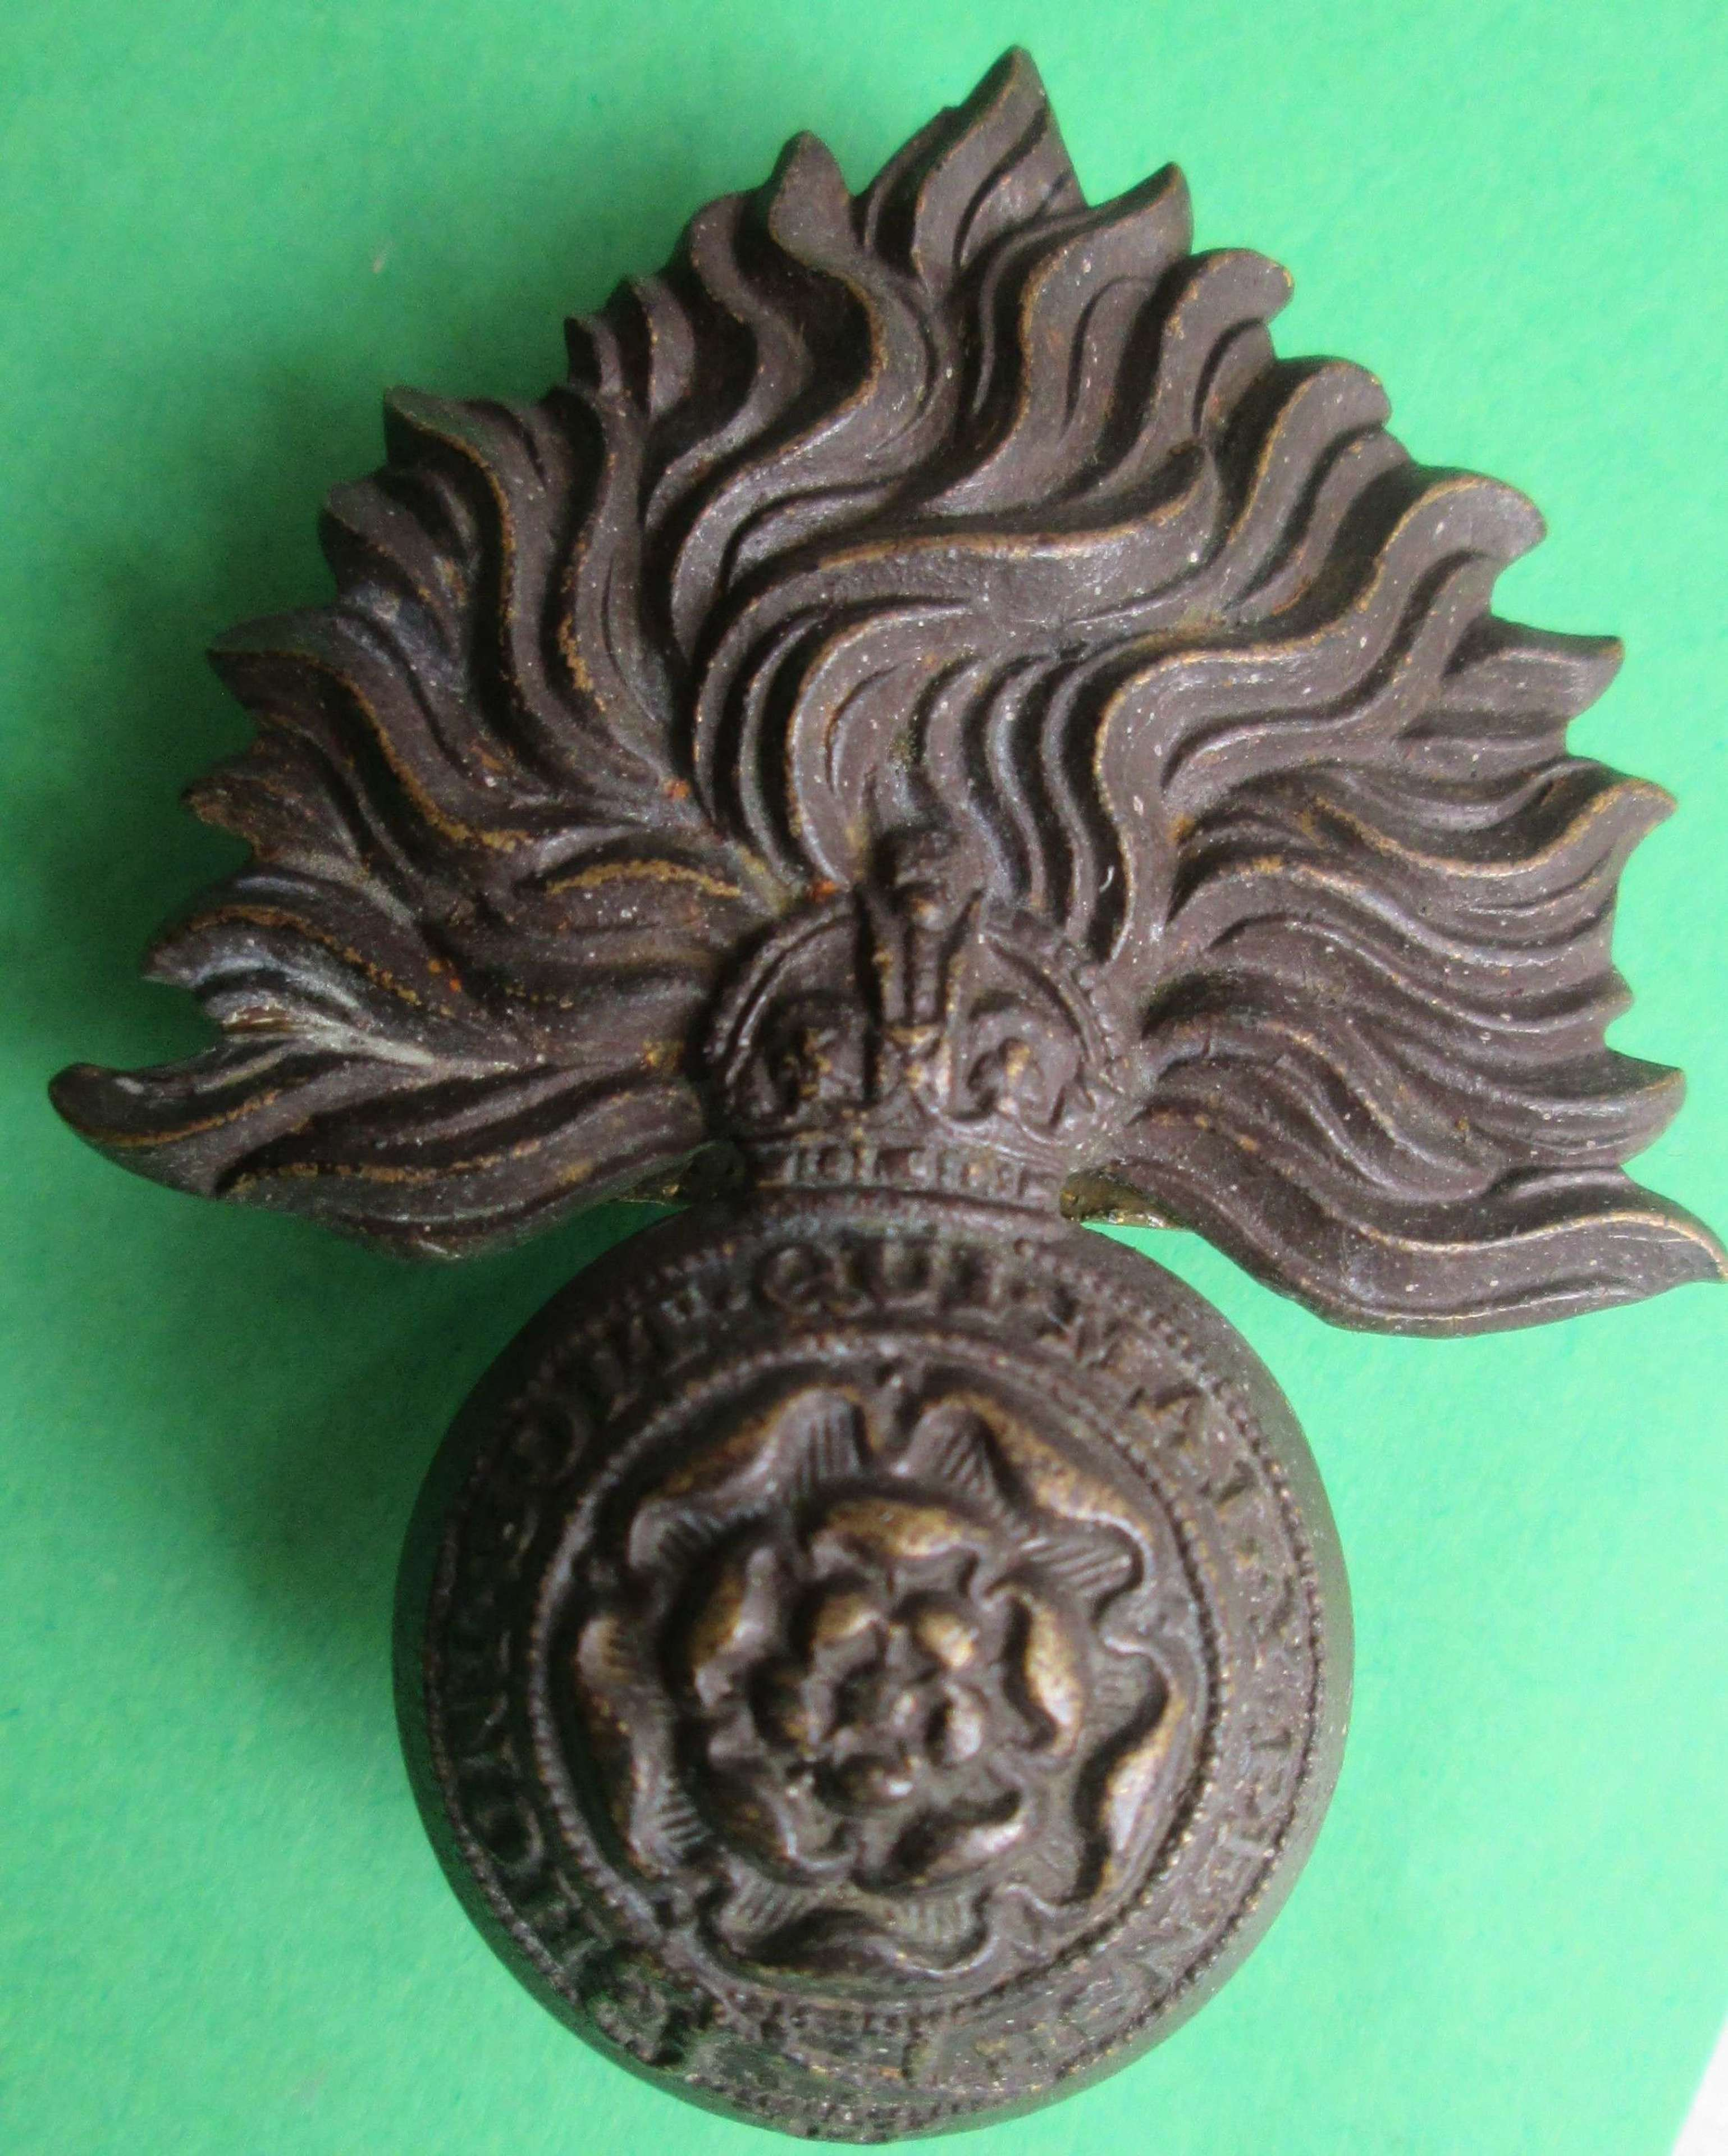 BRASS OFFICER'S ROYAL FUSILIERS CAP BADGE